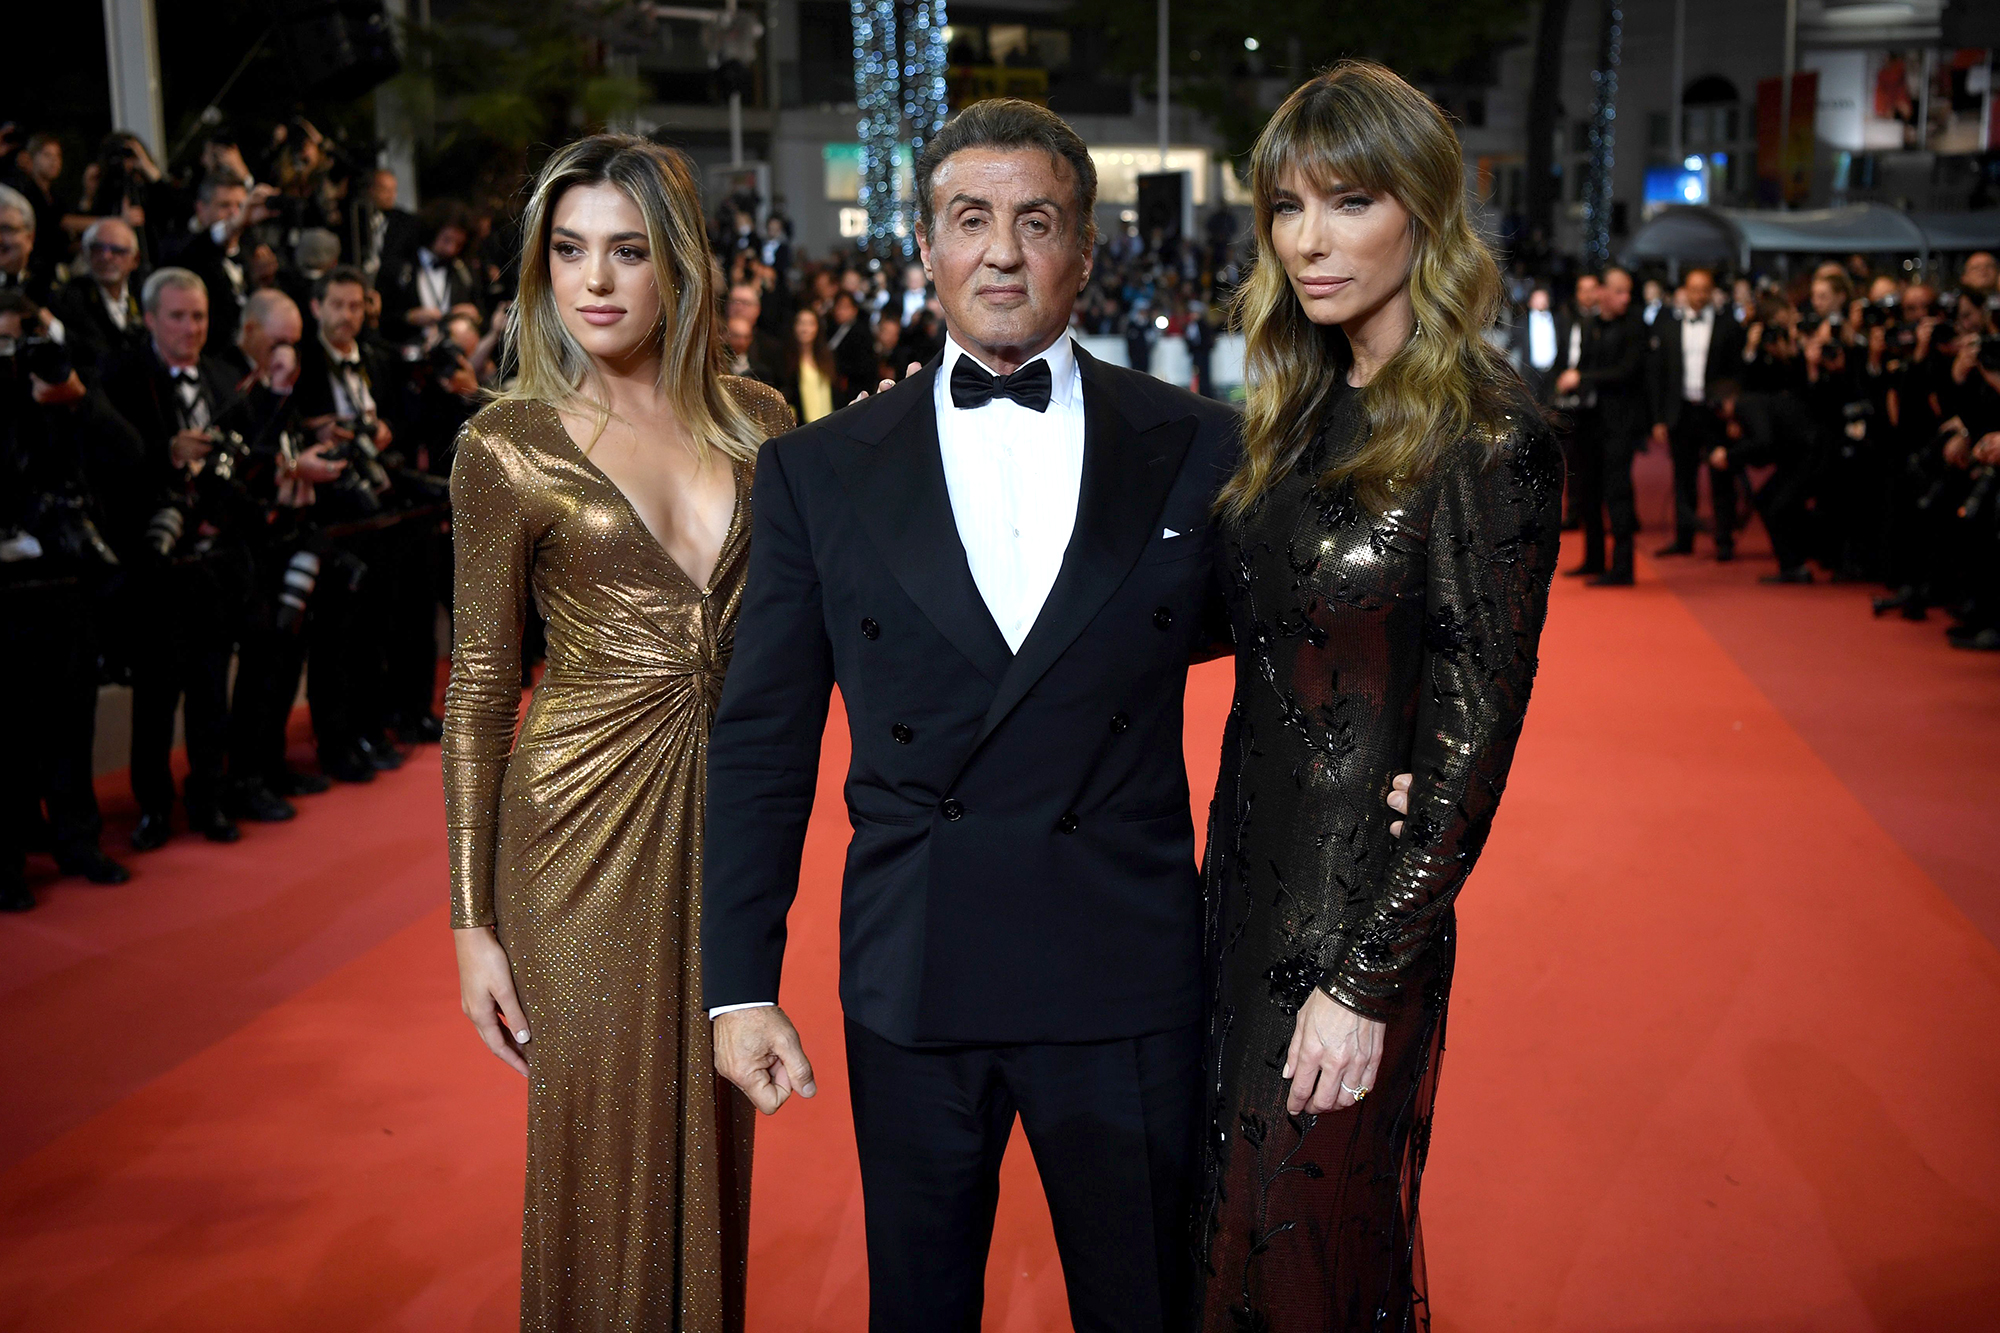 """US actor Sylvester Stallone (C) poses with his wife Jennifer Flavin (R) and daughter Sistine as they arrive for the screening of """"Homage to Sylvester Stallone - Rambo : First Blood"""" at the 72nd edition of the Cannes Film Festival in Cannes, southern France, on May 24, 2019. (Photo by CHRISTOPHE SIMON / AFP) (Photo credit should read CHRISTOPHE SIMON/AFP/Getty Images)"""